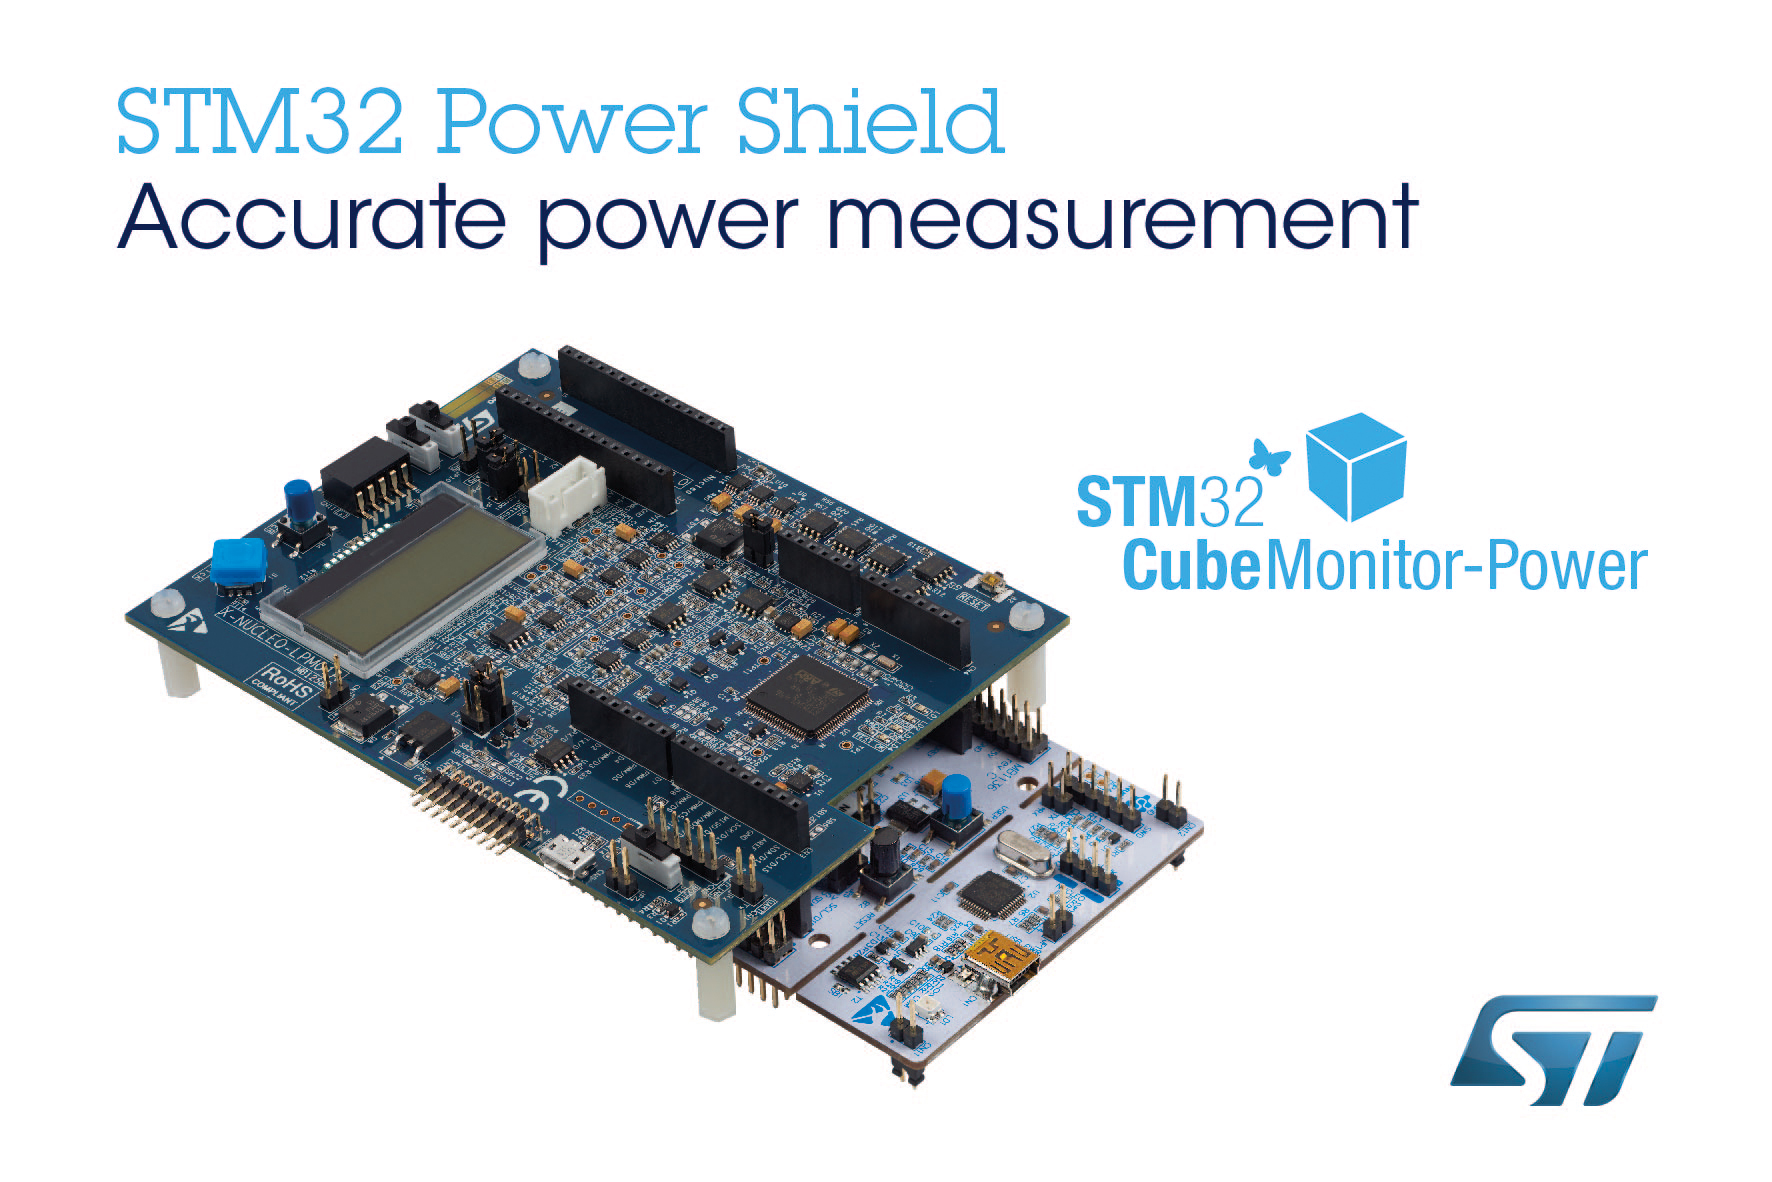 STMicroelectronics' STM32 Power Shield: EEMBC™-Approved Power